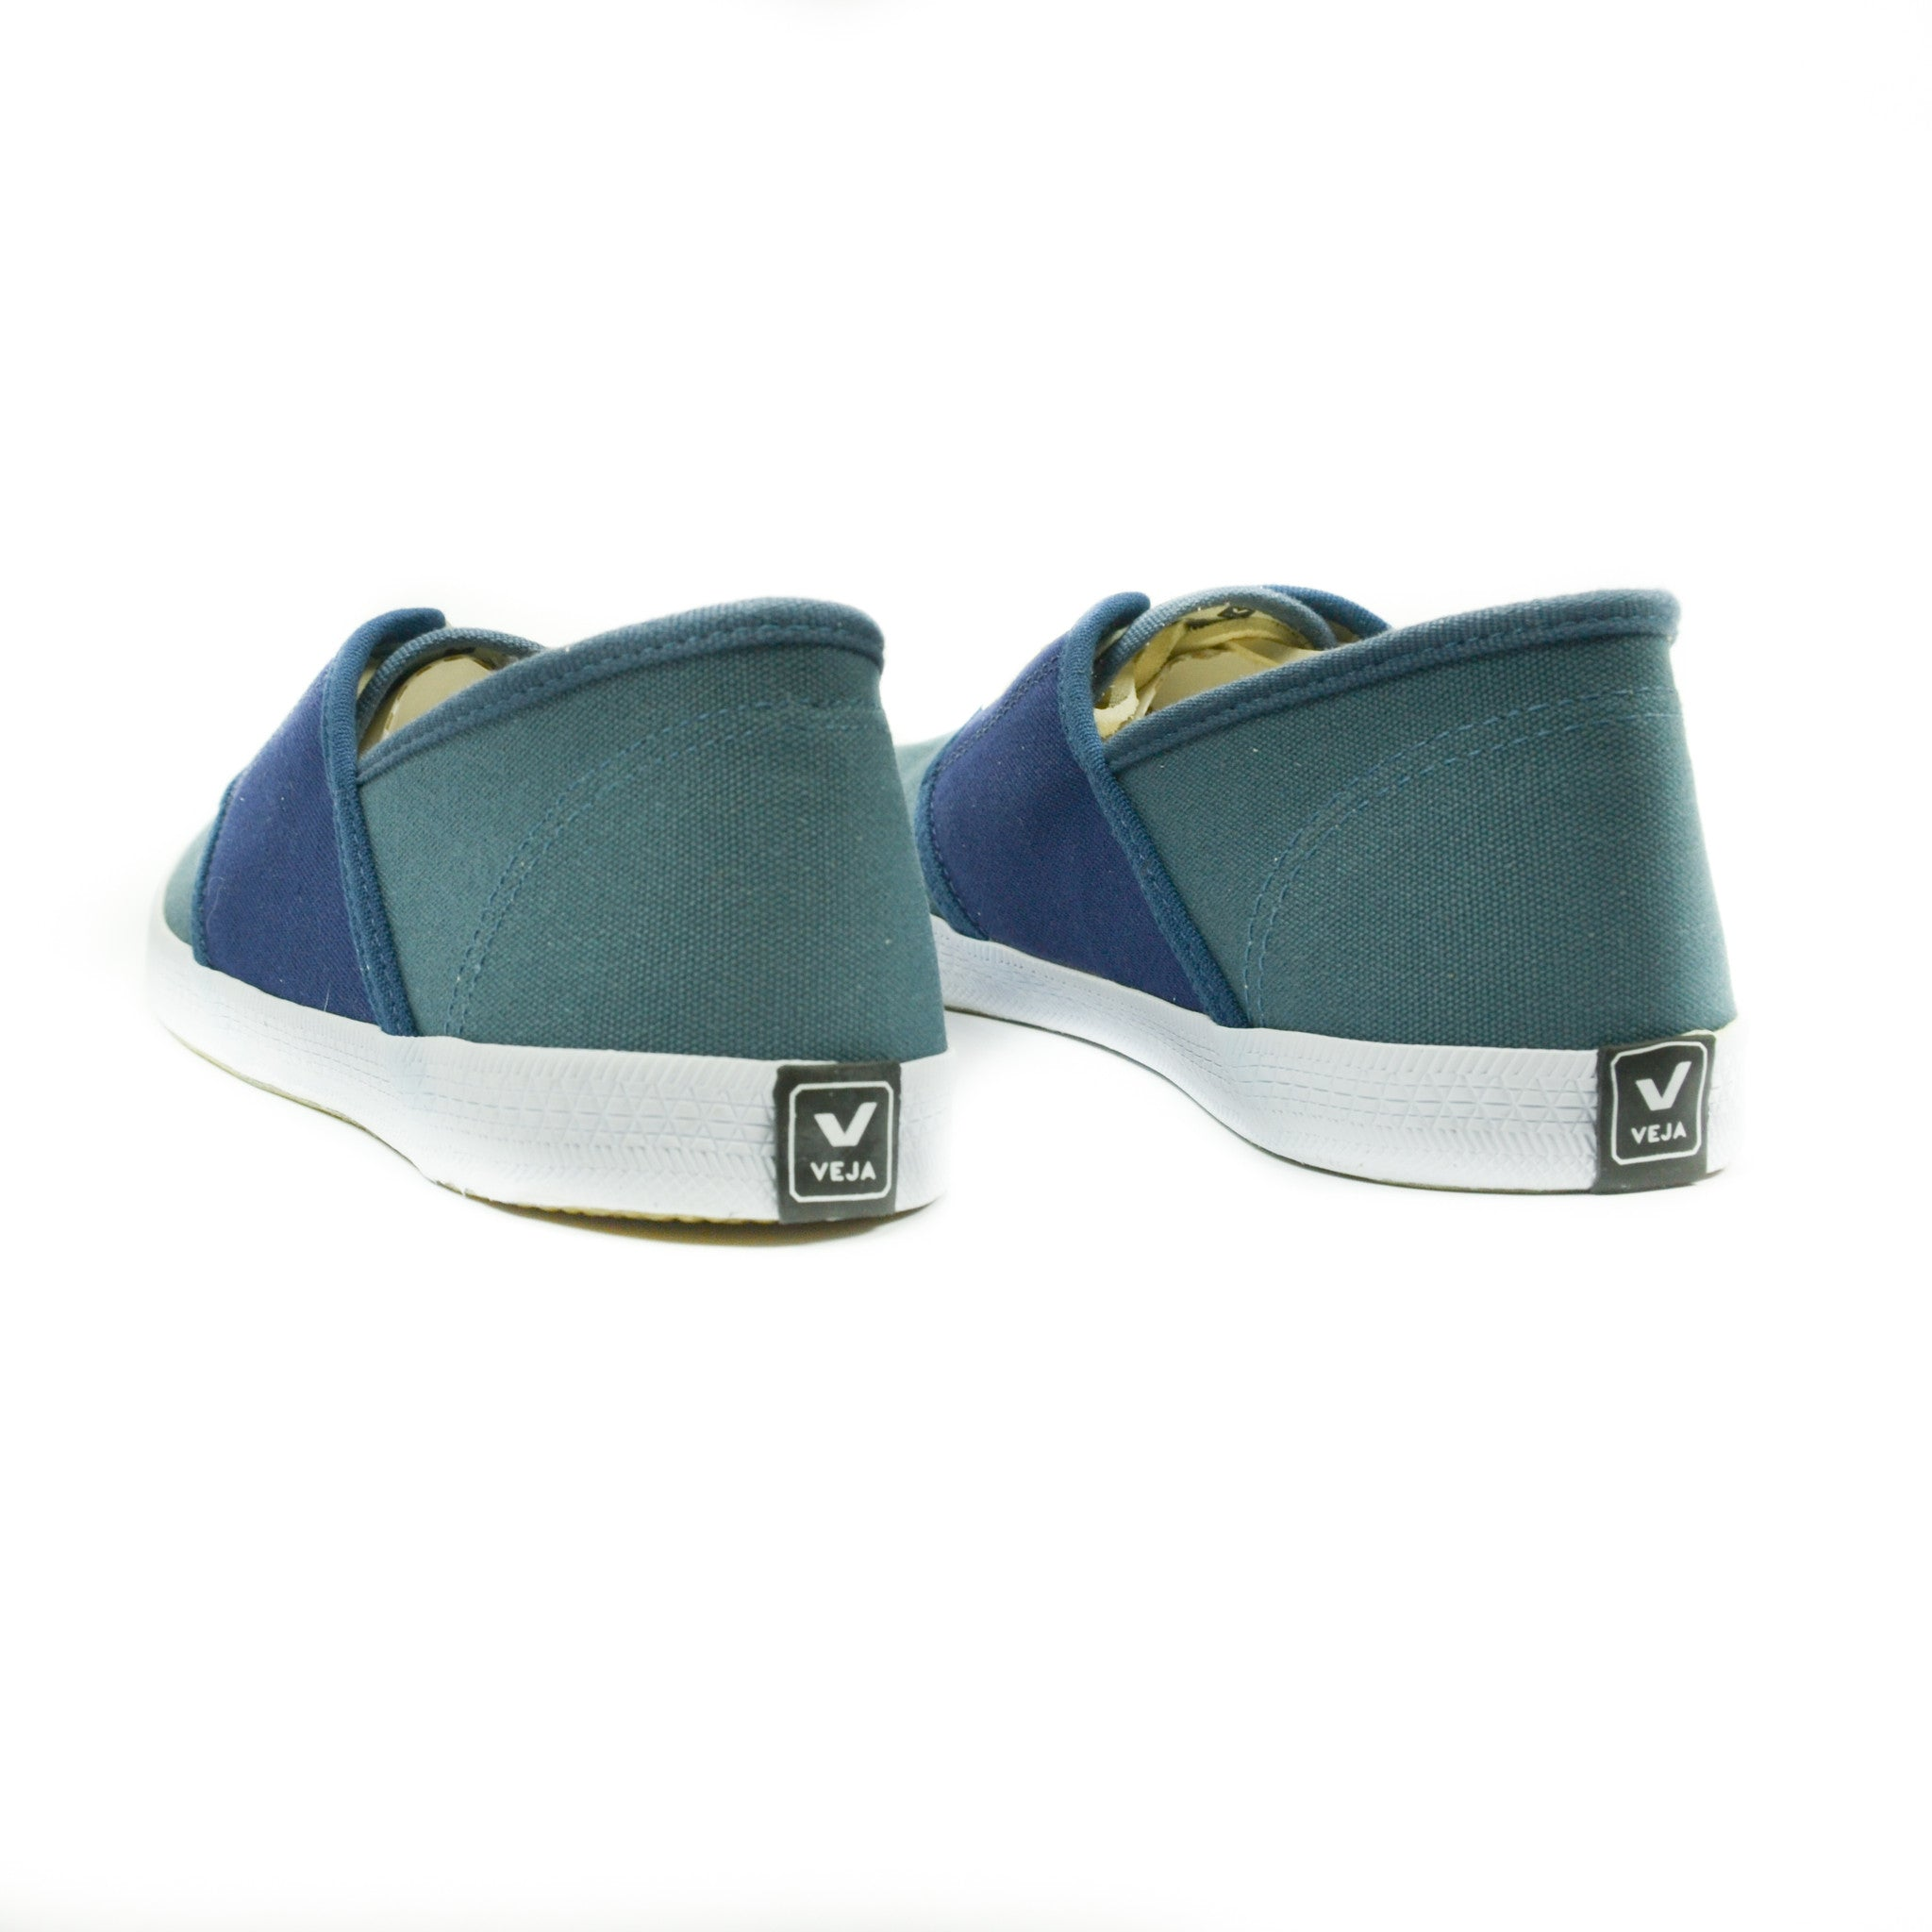 Veja - Mediteranee Canvas Sneakers in California Marine - size 8 only!